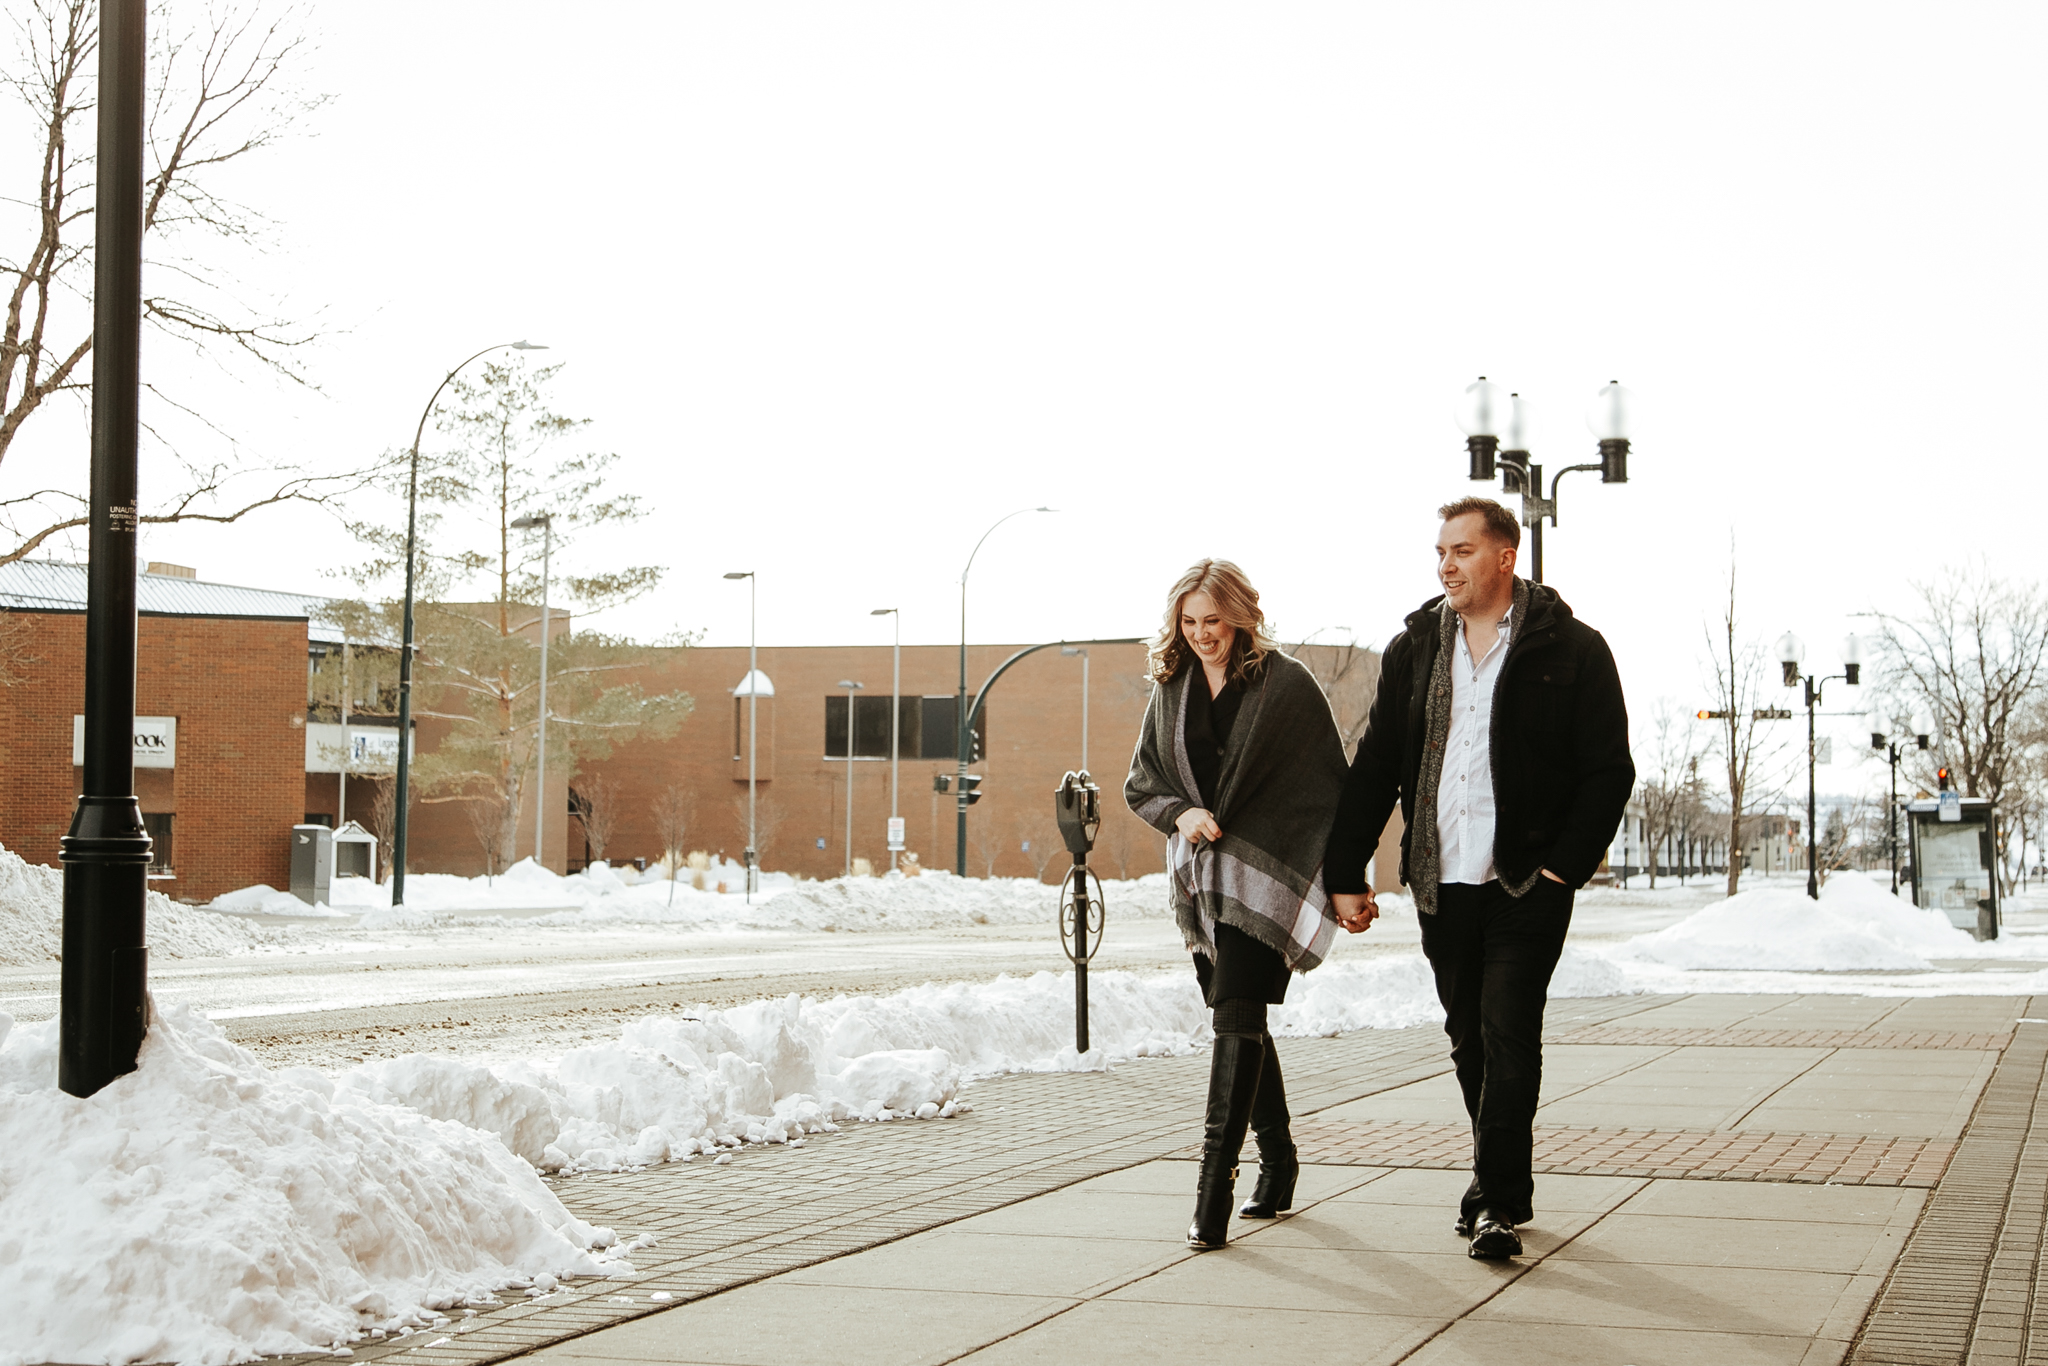 lethbridge-photographer-love-and-be-loved-photography-brandon-danielle-winter-engagement-downtown-yql-picture-image-photo-22.jpg